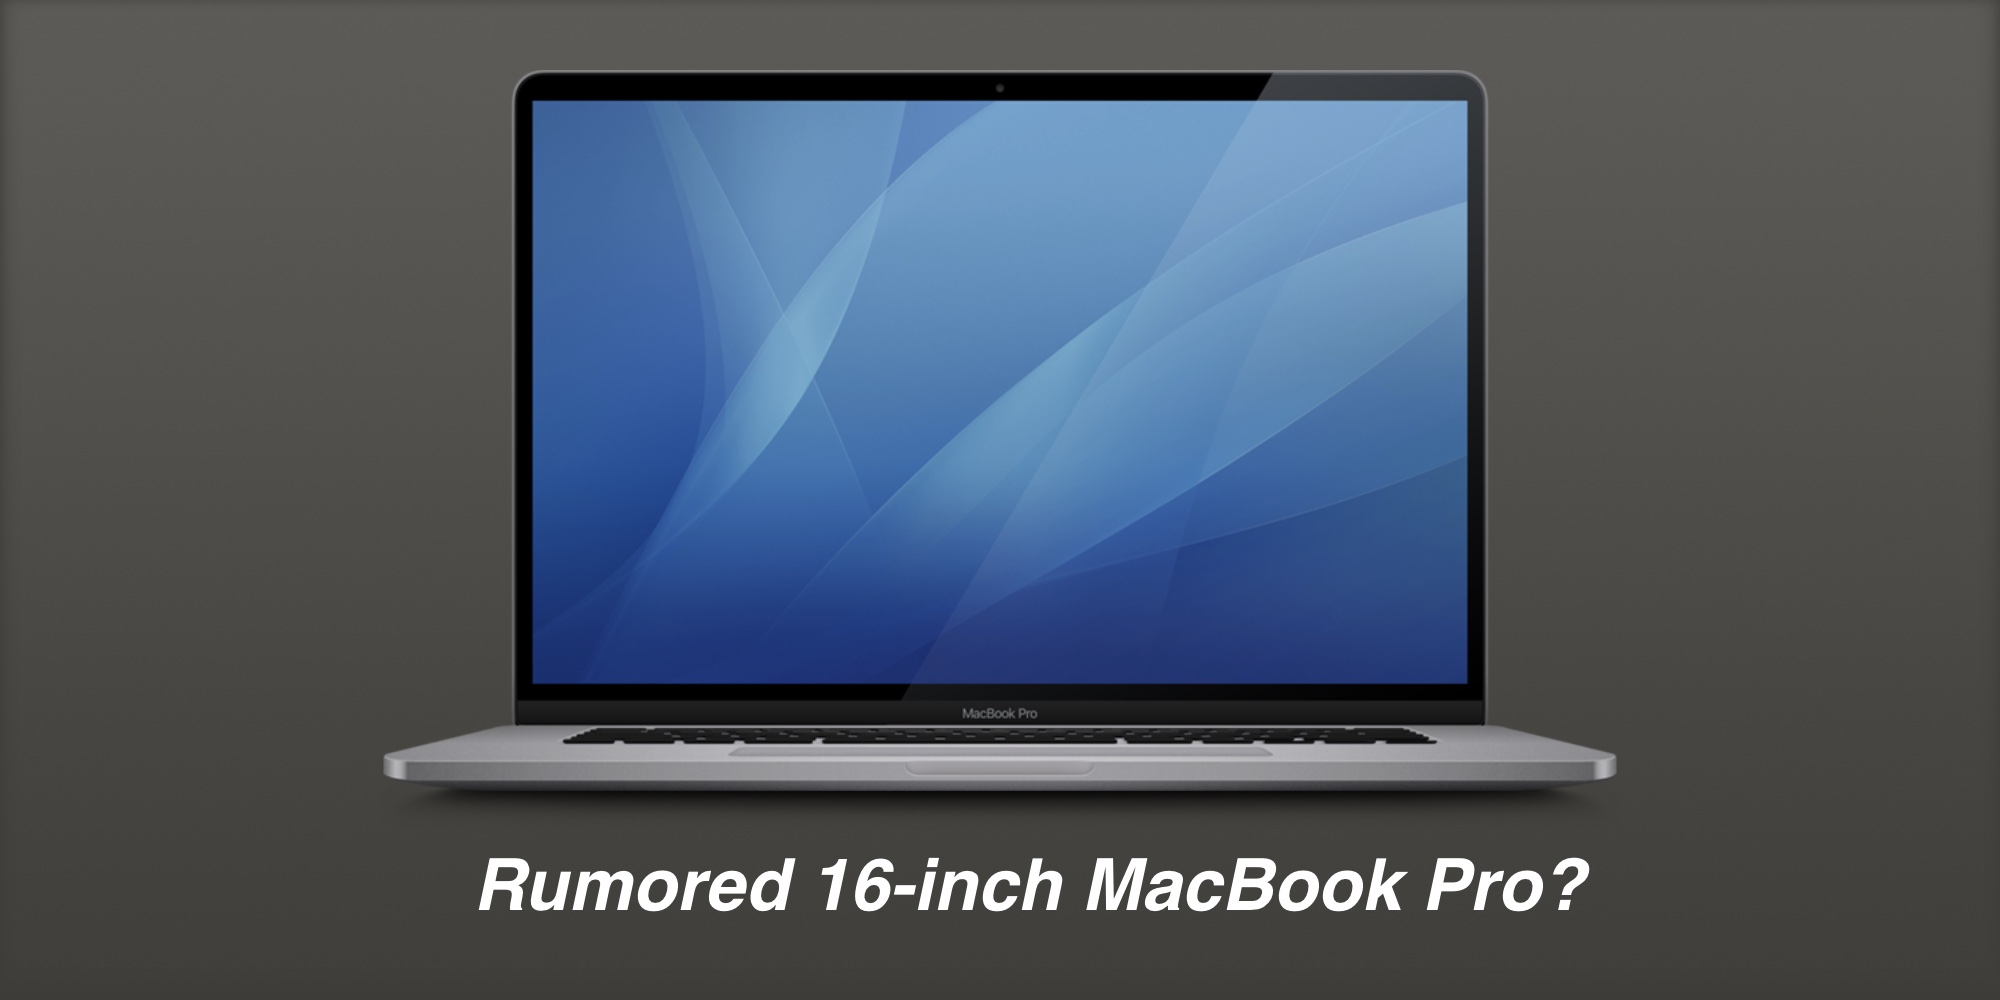 16-inch MacBook Pro debut likely this week as Apple appears to be holding private press briefings